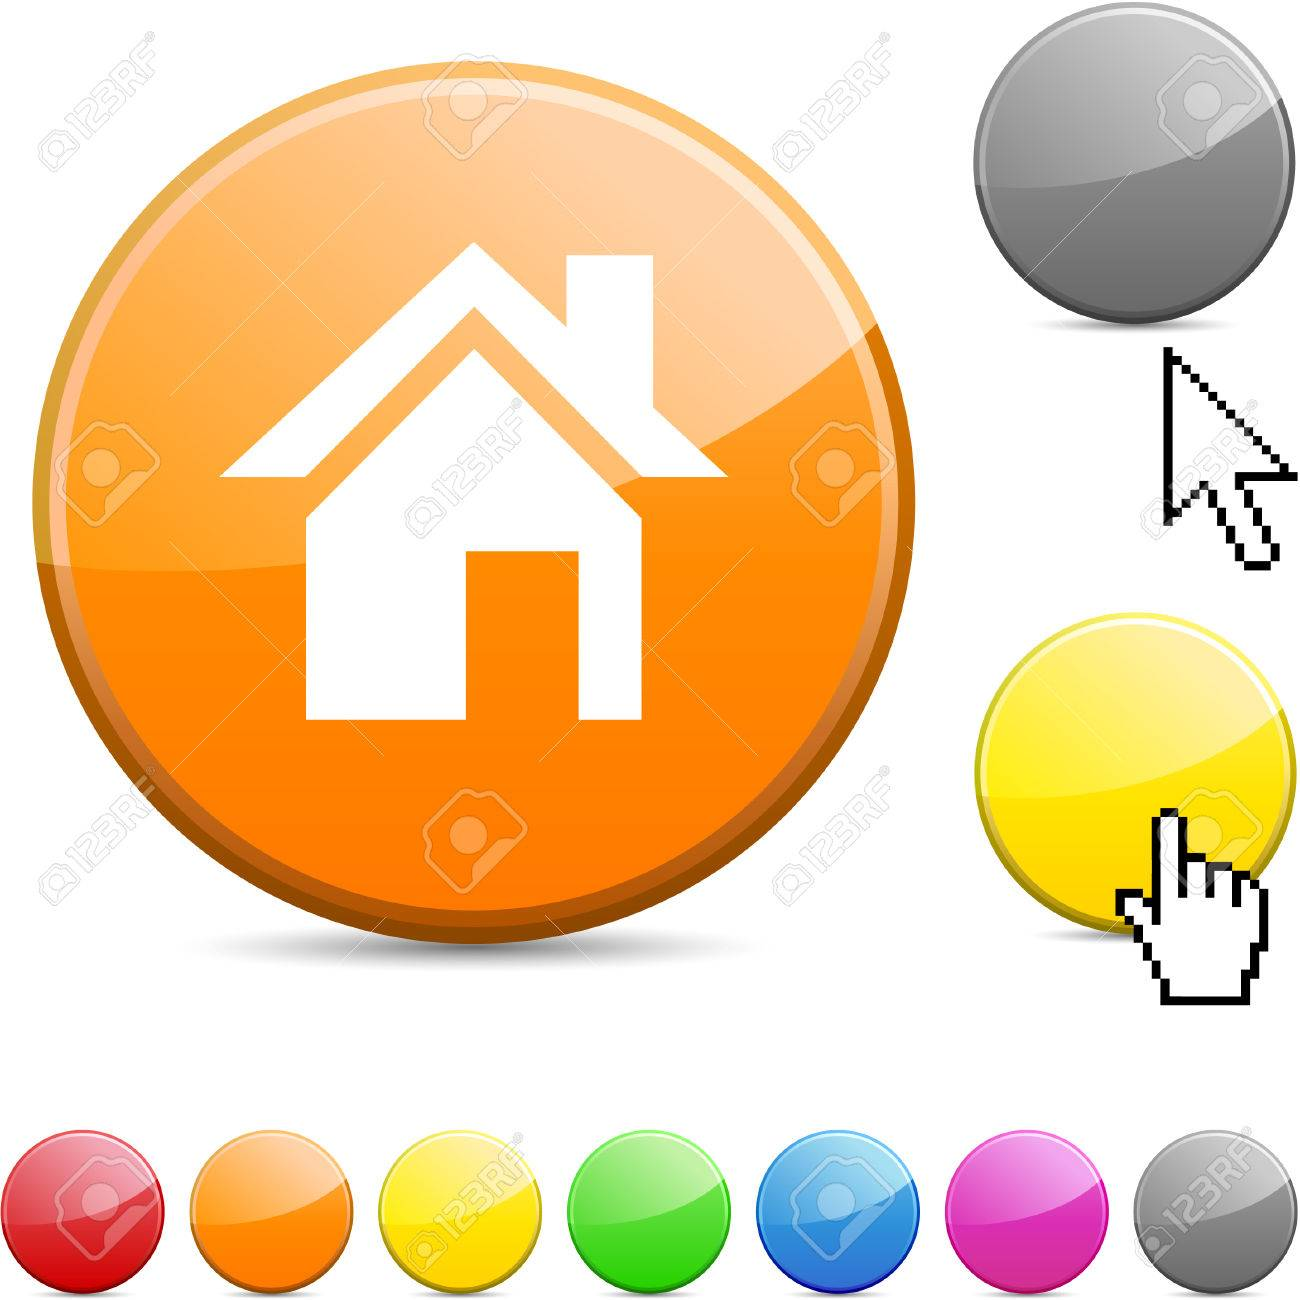 Home glossy vibrant round icon. Stock Vector - 7167812